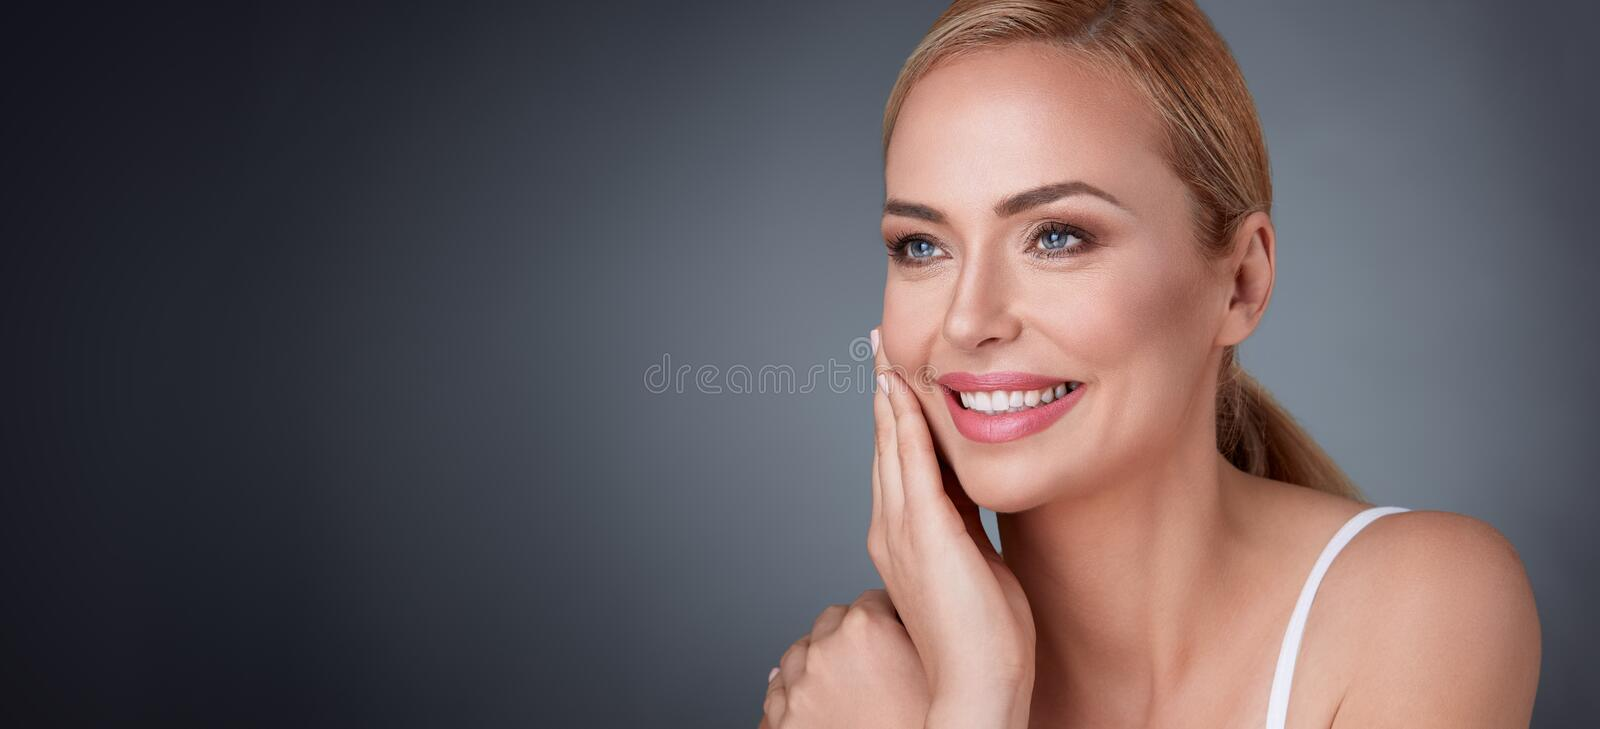 Woman satisfied with her nature beauty. Smiling middle aged woman satisfied with her nature beauty royalty free stock photos